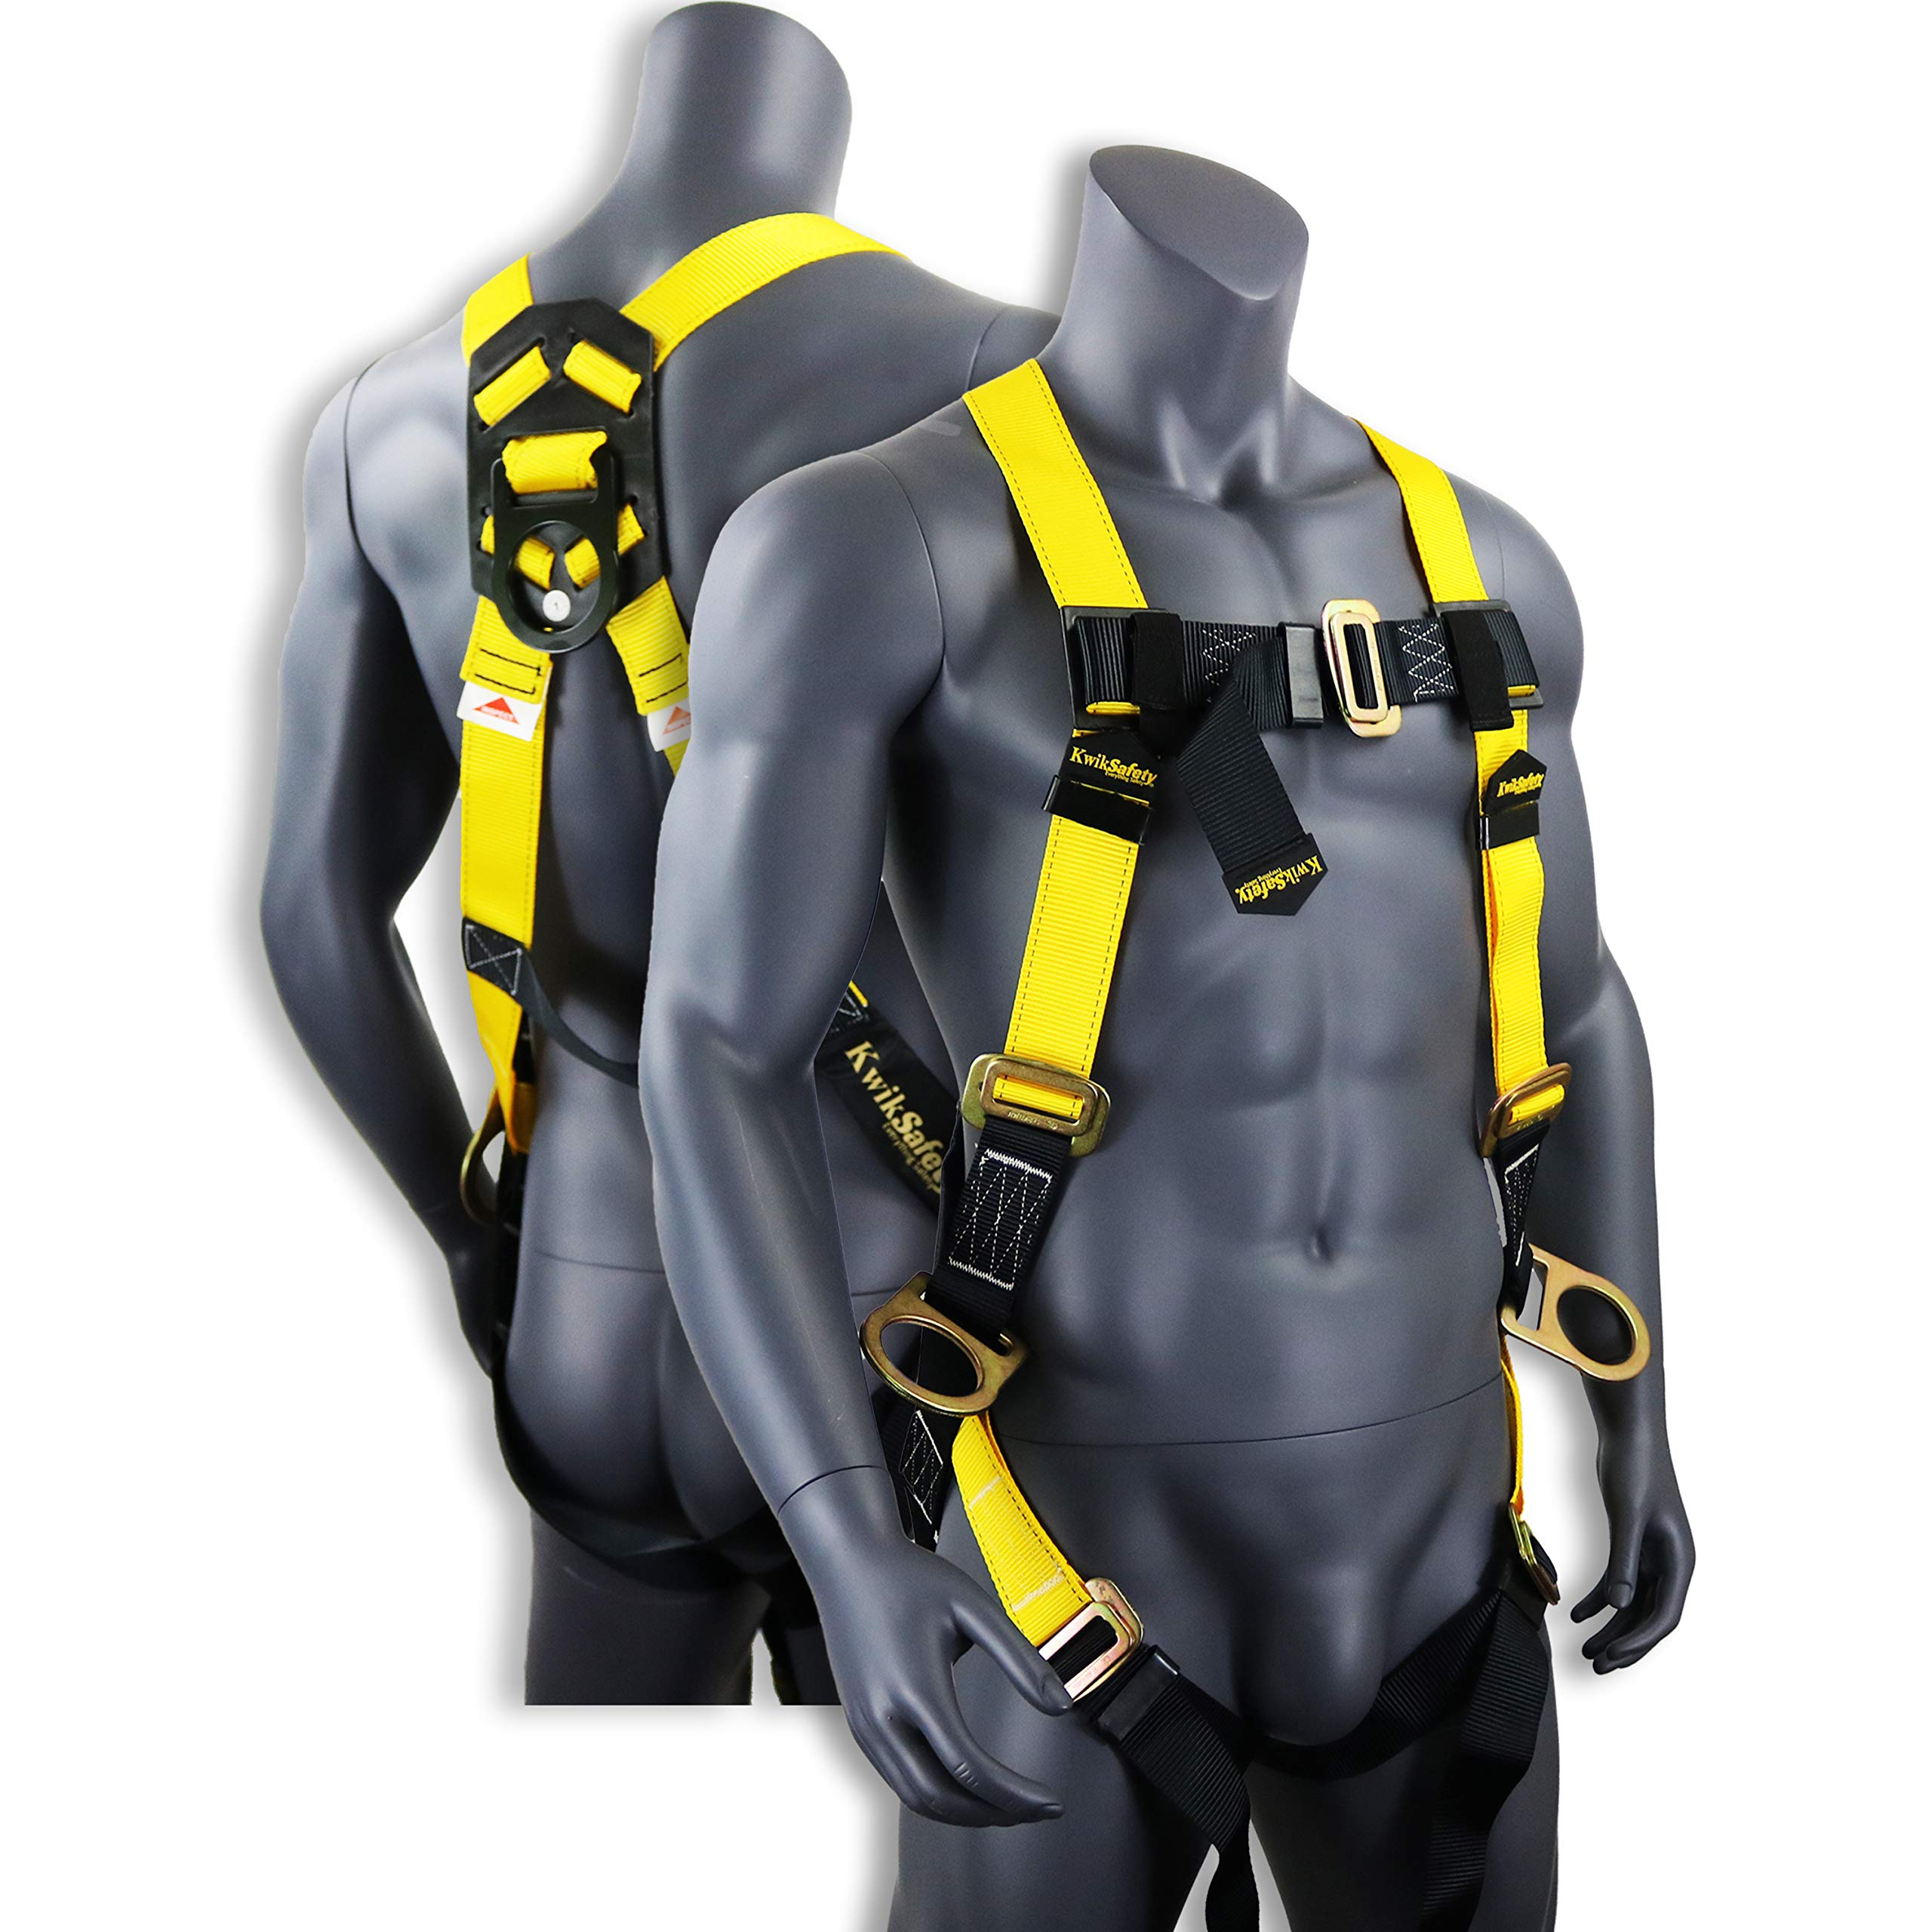 KwikSafety THUNDER | Safety Harness | ANSI OSHA Full Body Personal Fall Protection|1 Dorsal Ring 2 Side D-Rings & Pass Through Buckle Straps | Universal Construction Industrial Tower Roofing Tool by KwikSafety